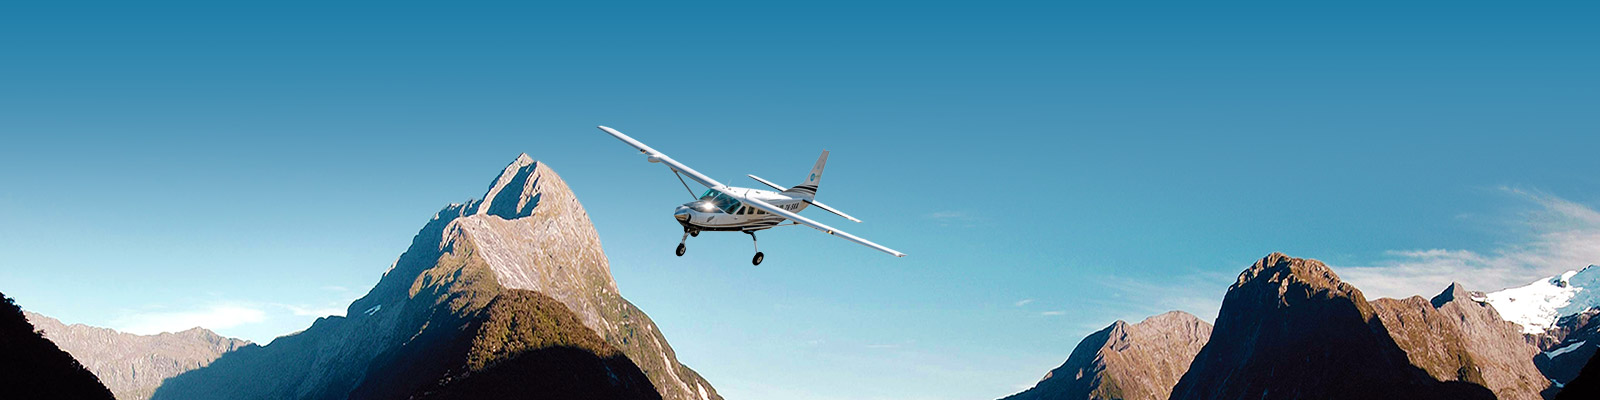 Milford Sound Fly Cruise Fly Deal